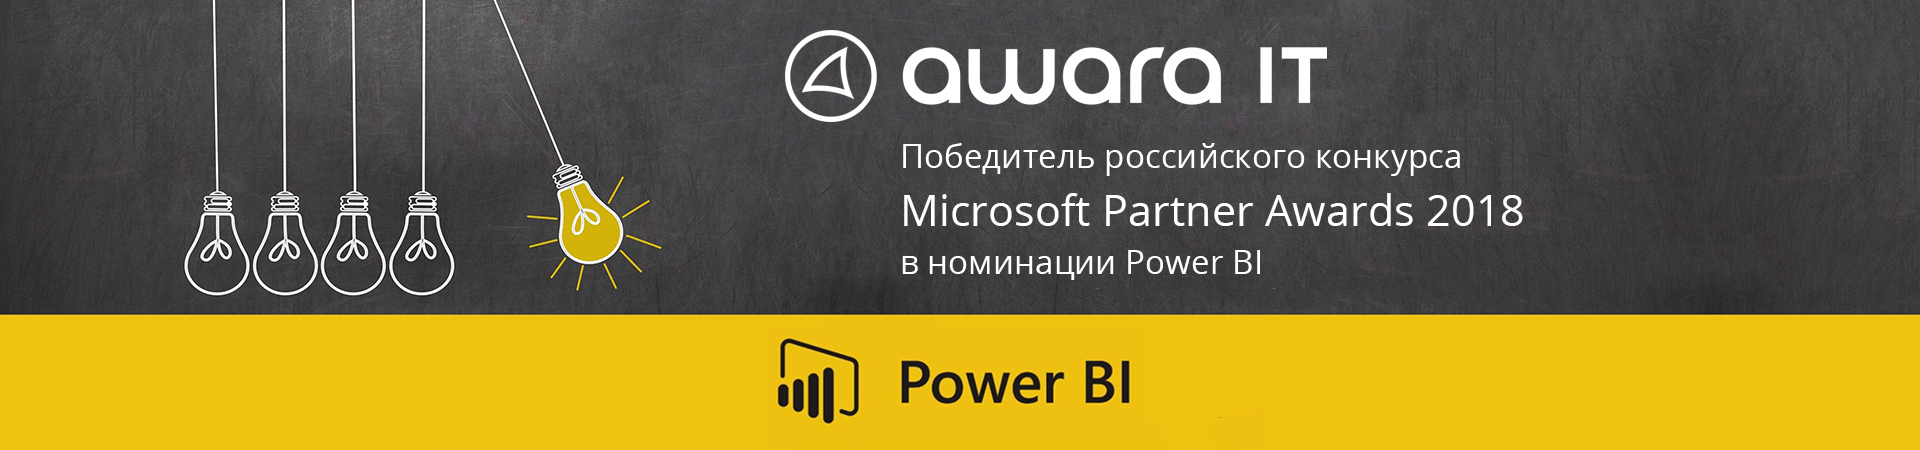 awara it power bi